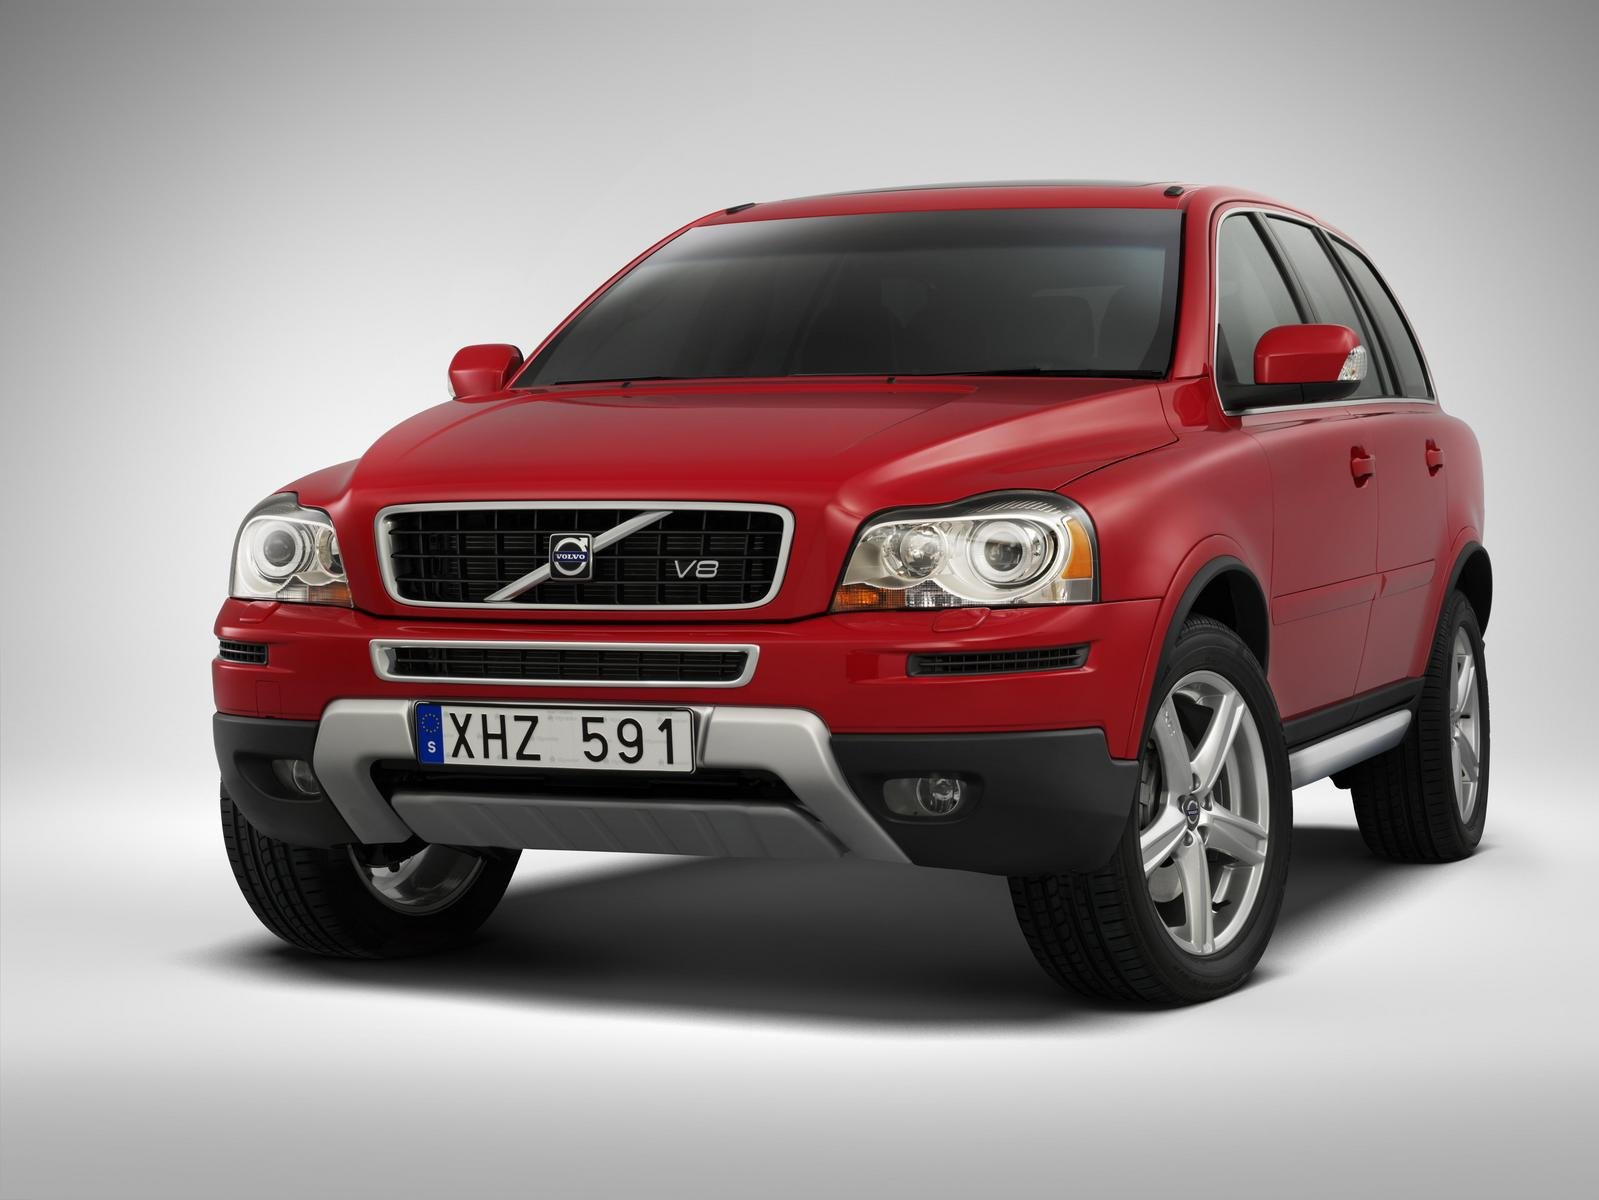 2007 Volvo XC90 V8 Sport Review - Top Speed